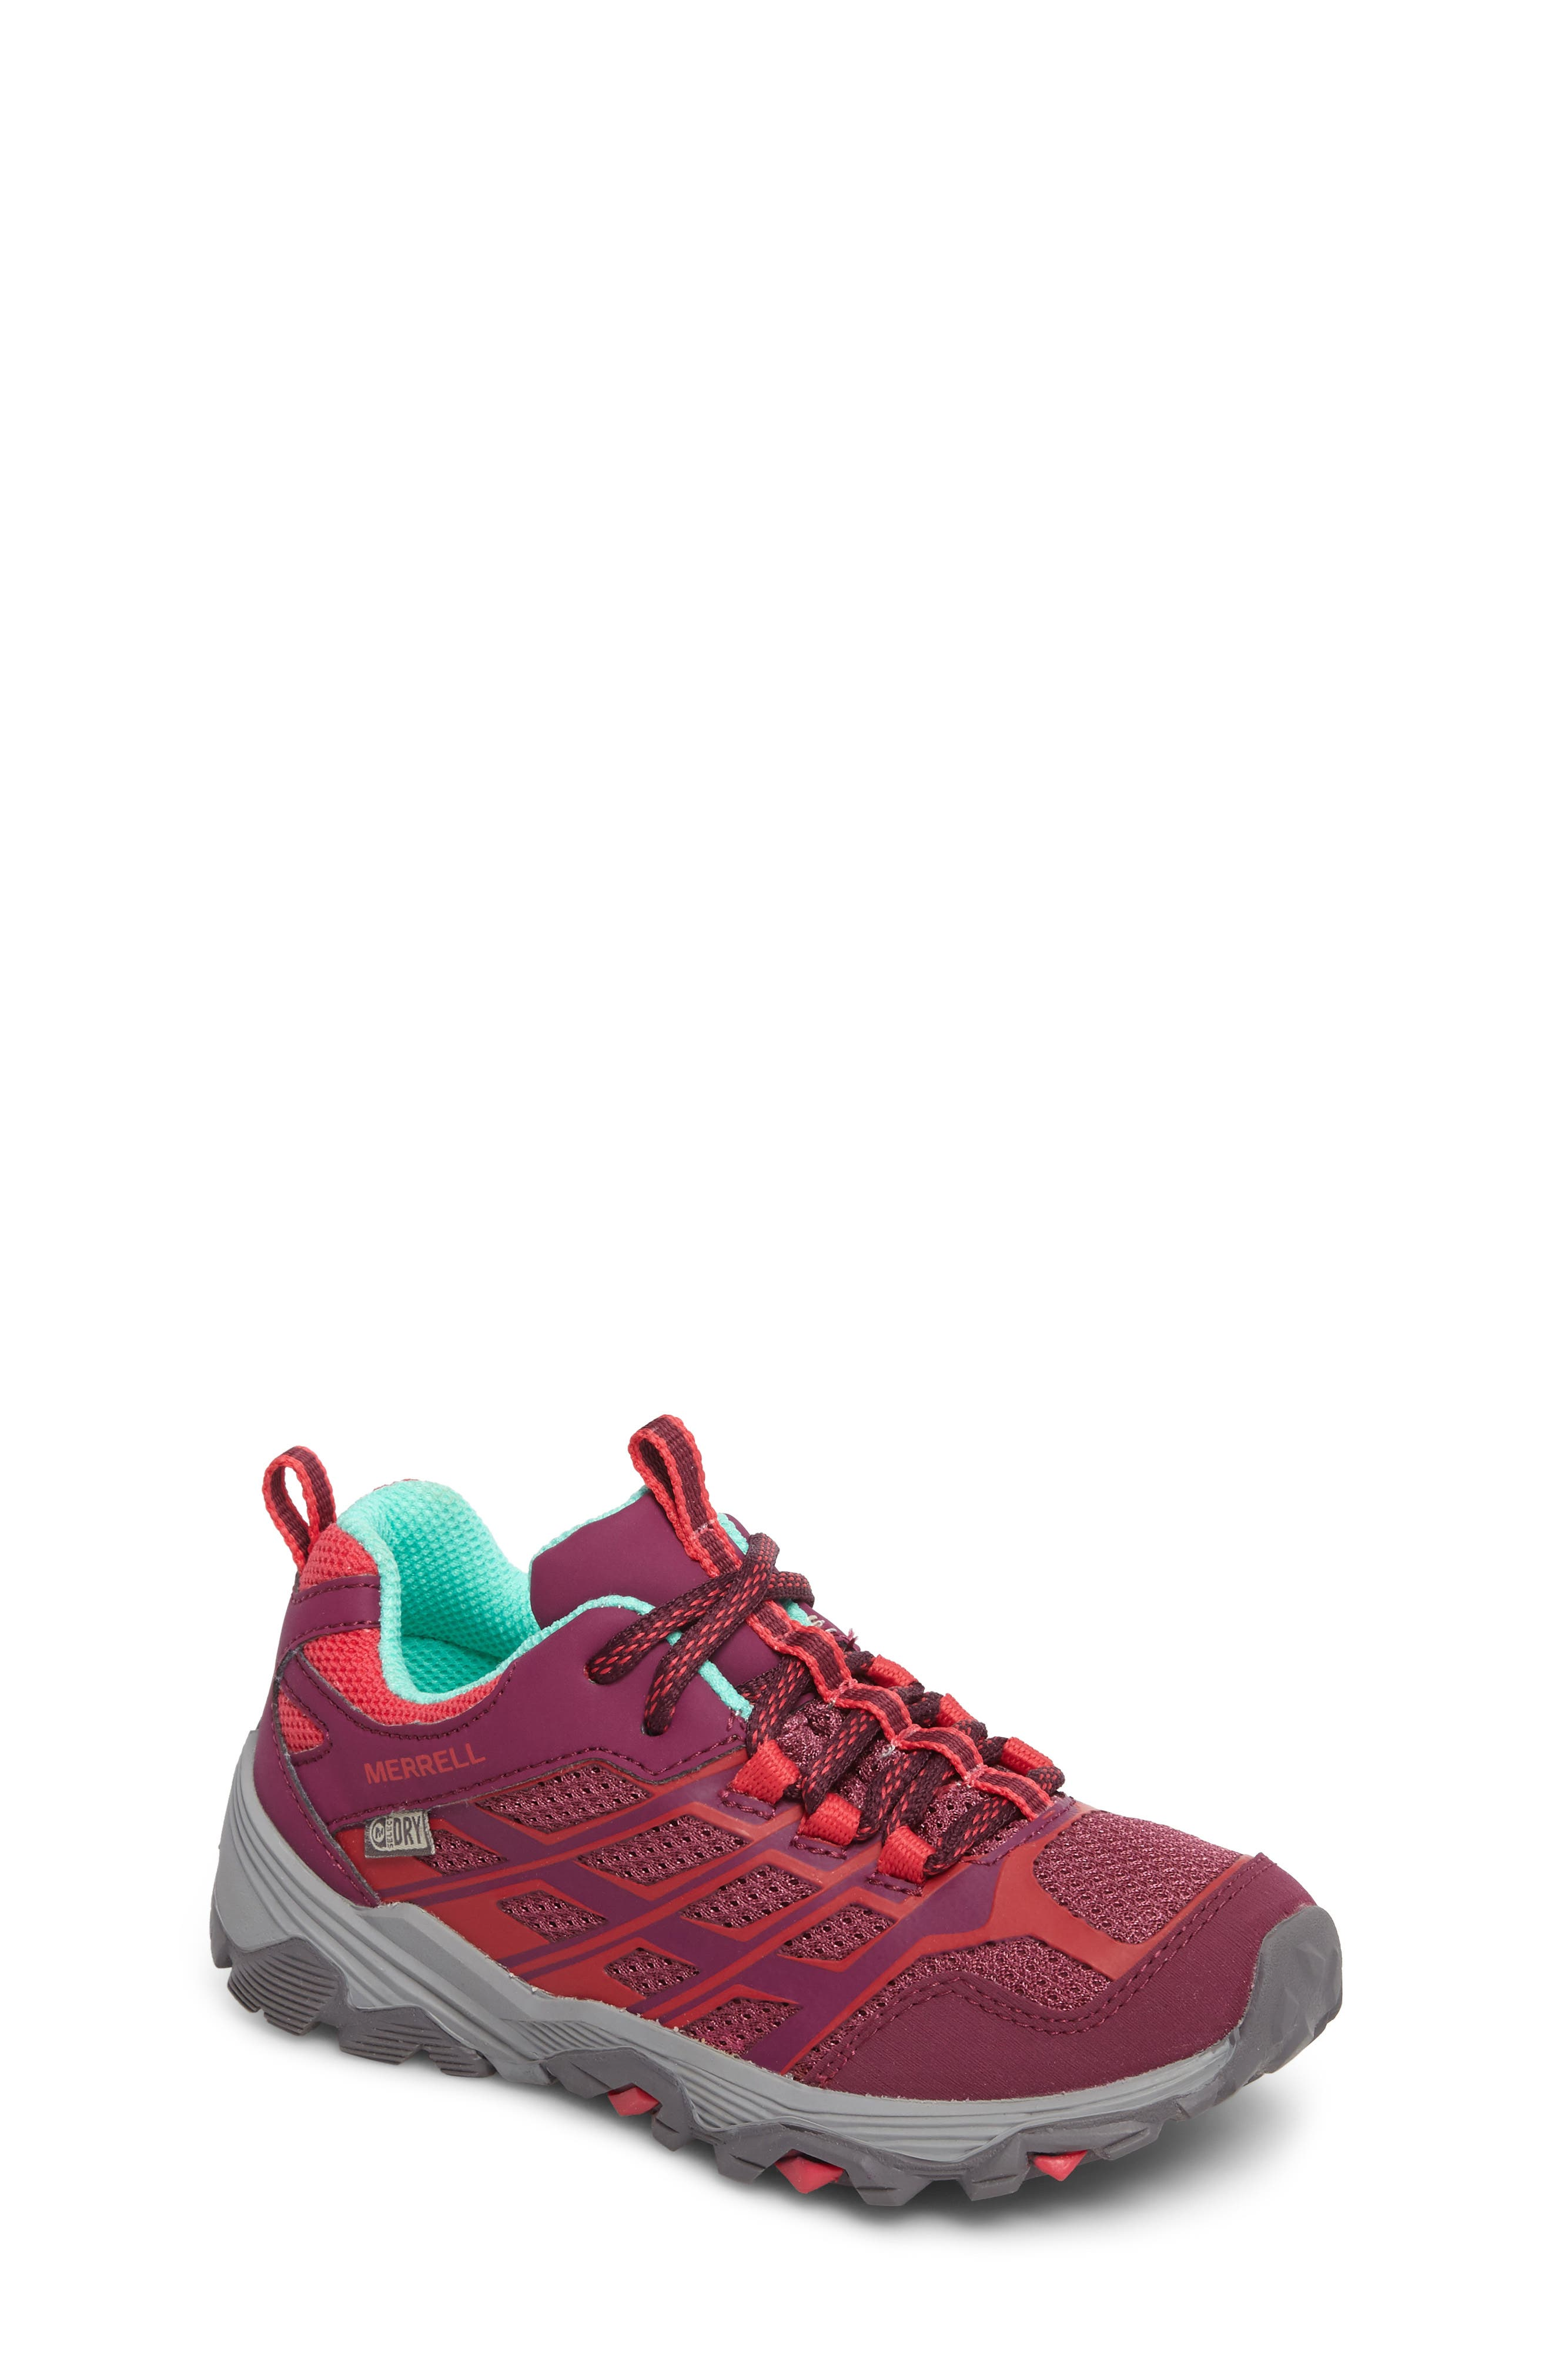 Alternate Image 1 Selected - Merrell Moab FST Polar Low Waterproof Sneaker (Toddler, Little Kid & Big Kid)